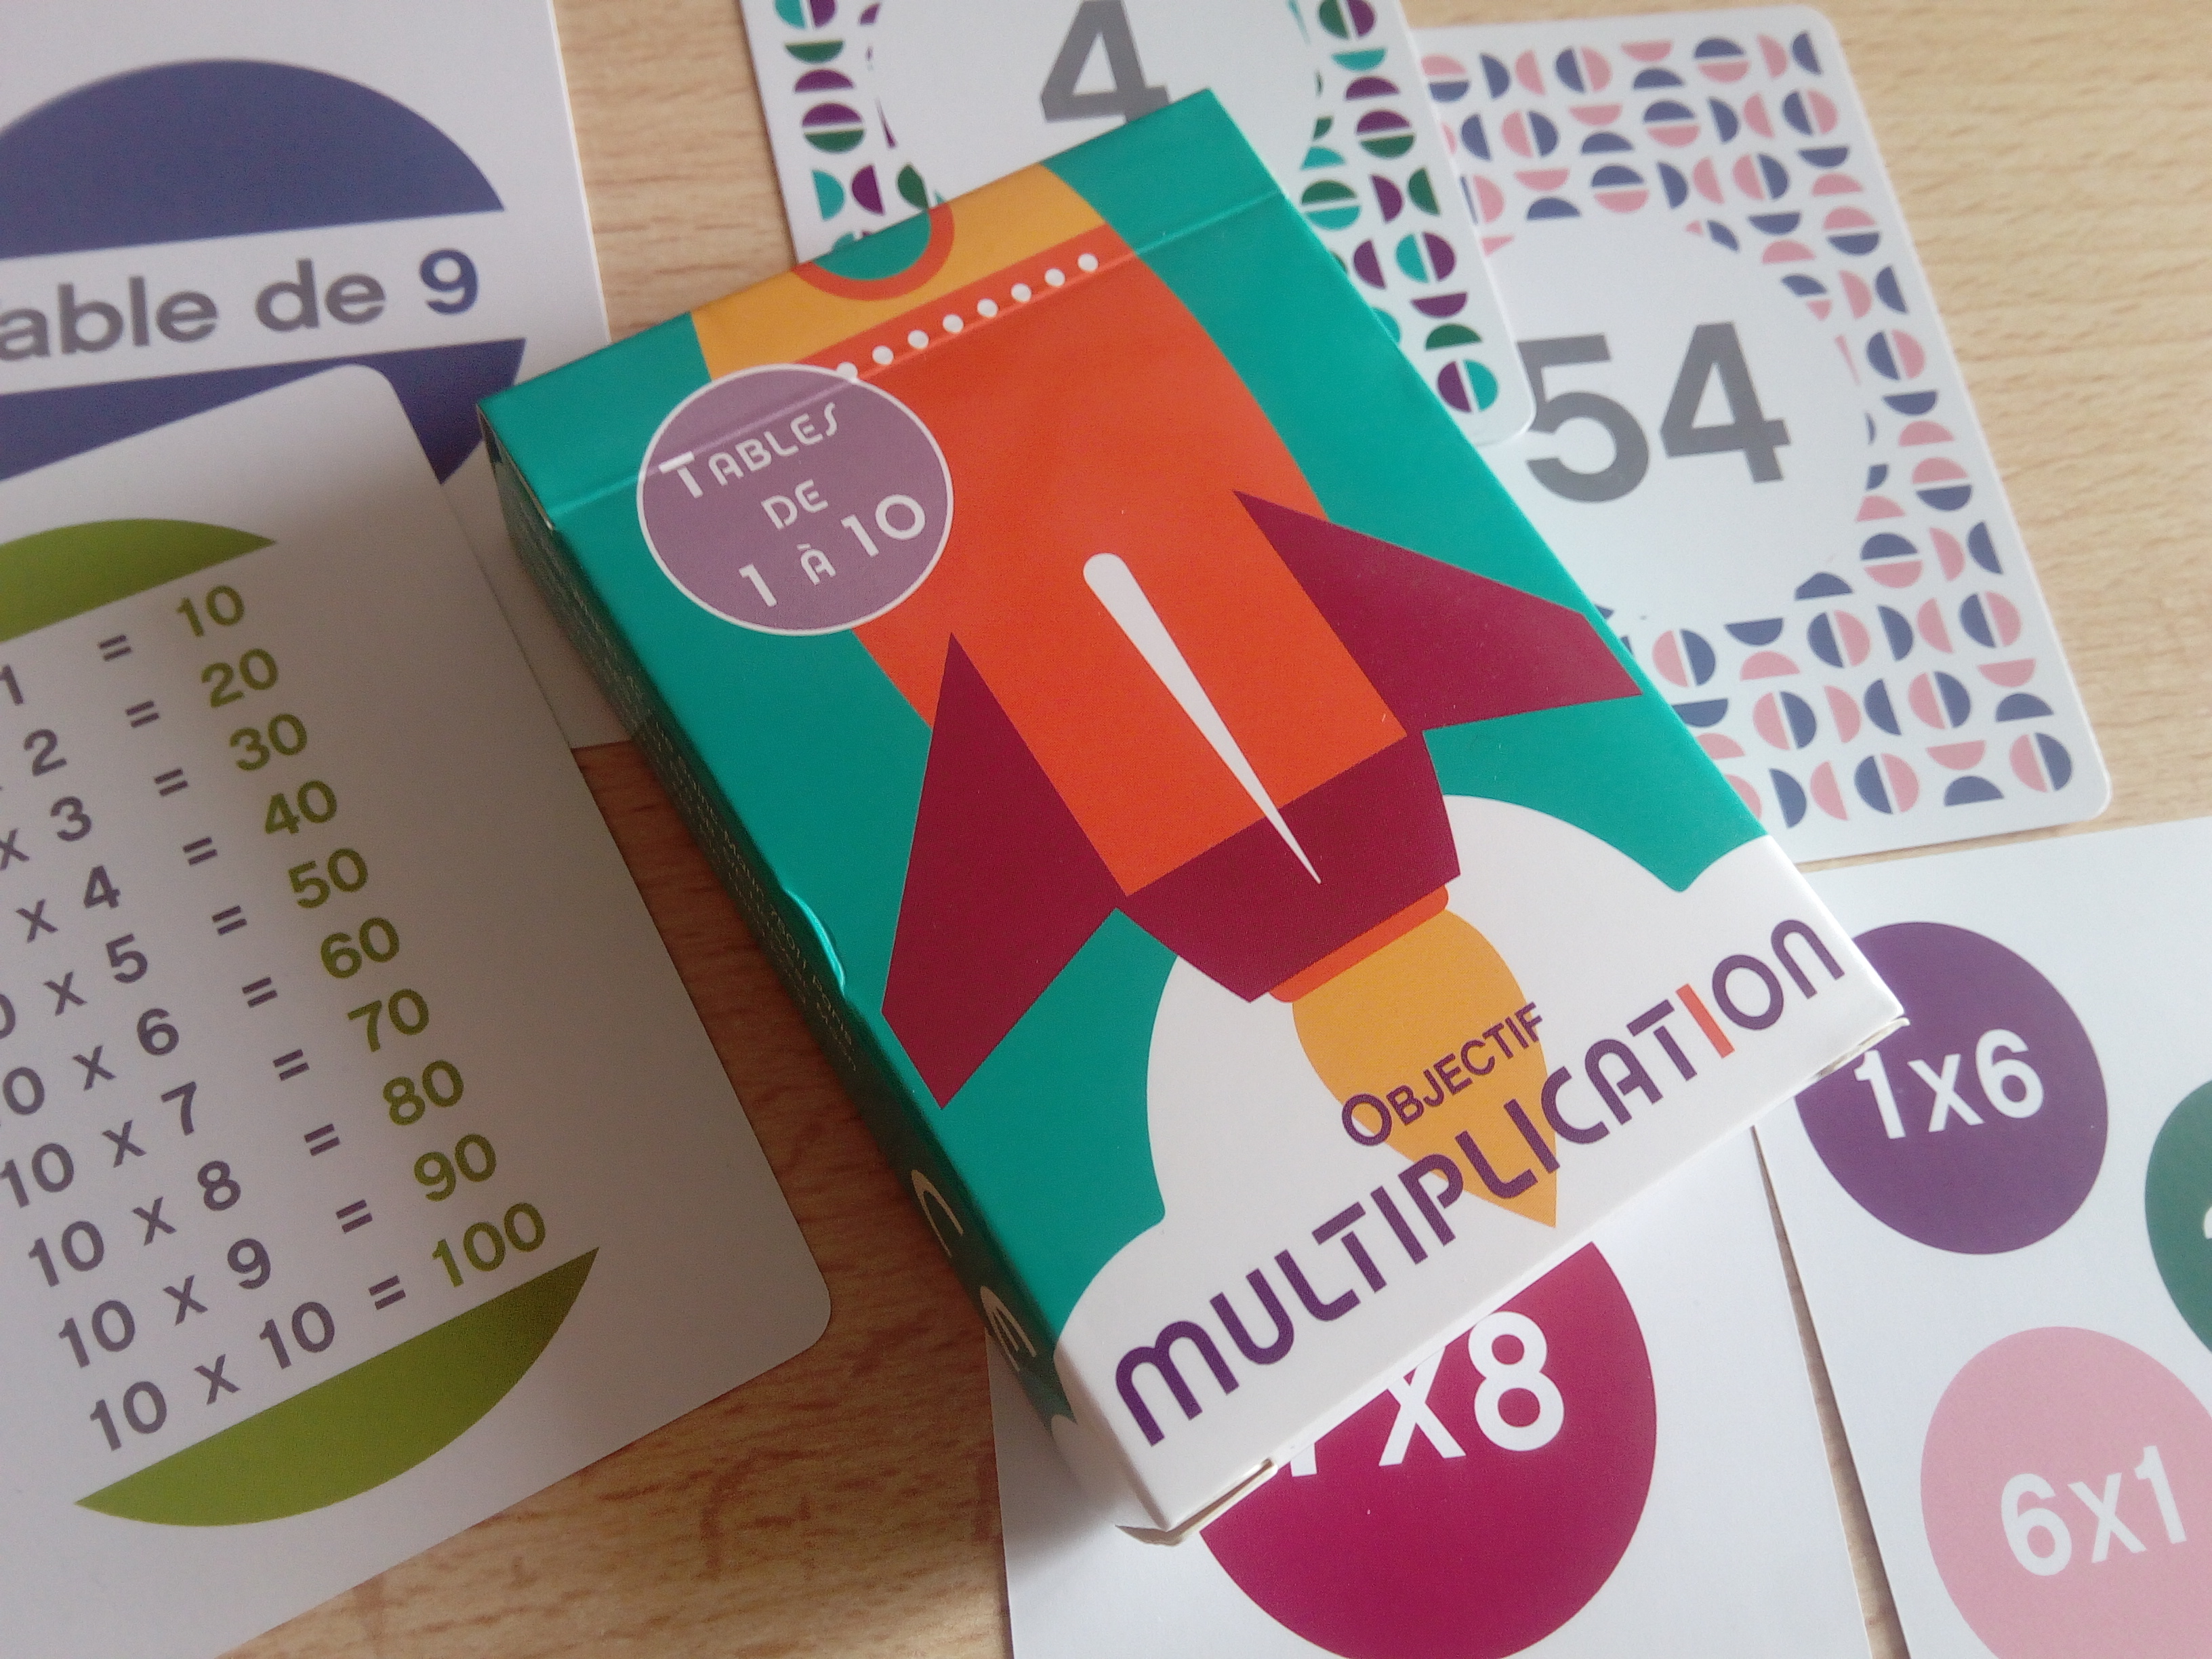 Objectif multiplication un jeu de cartes malin pour - Apprentissage table de multiplication ...